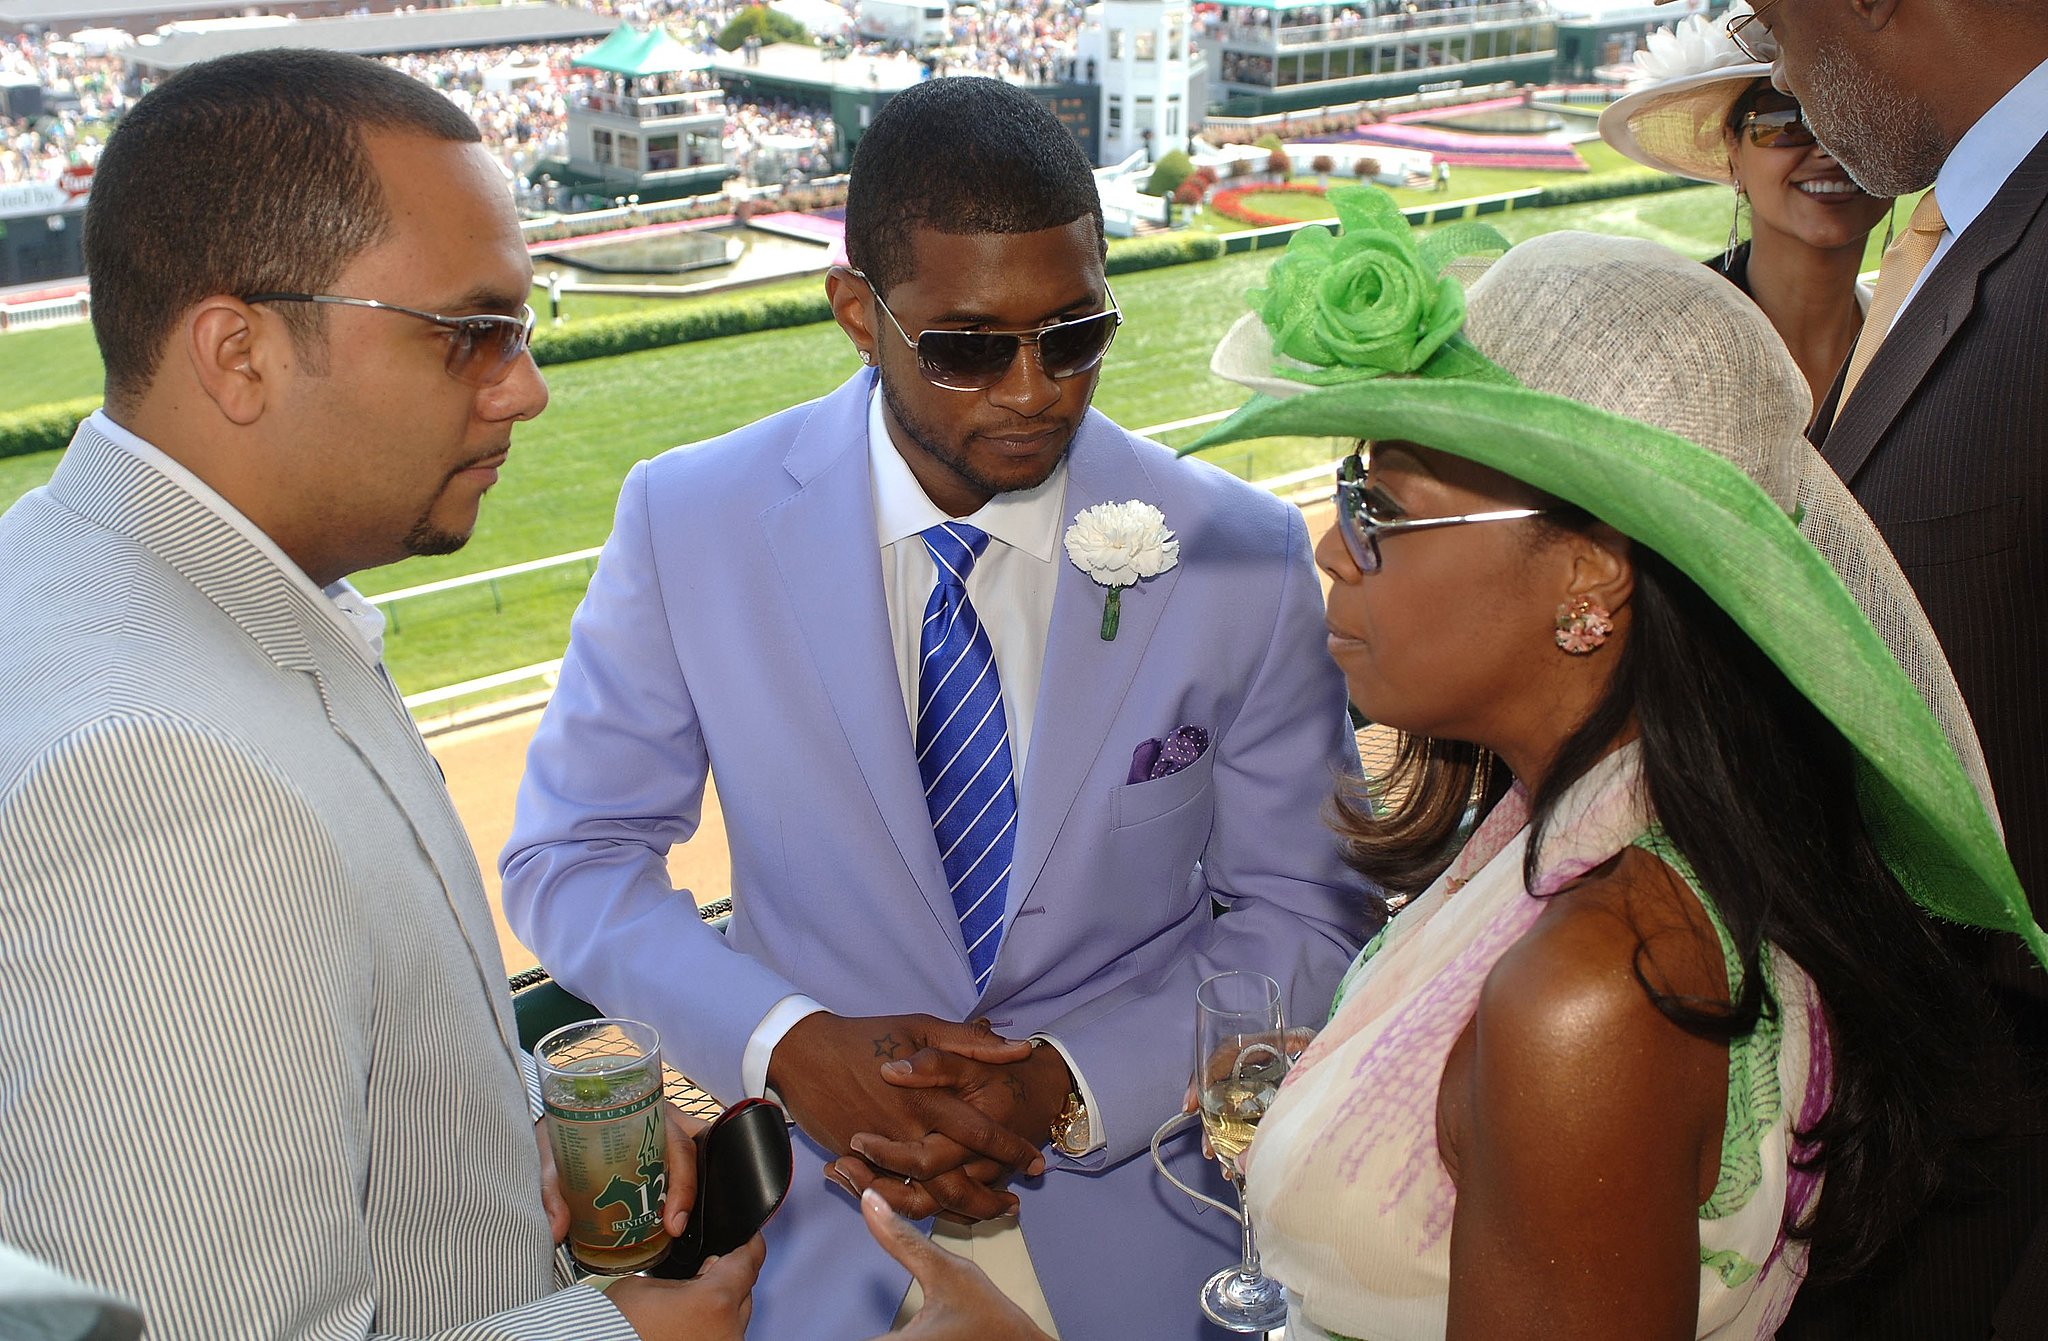 Usher and Star Jones watched the event from a balcony in 2006.